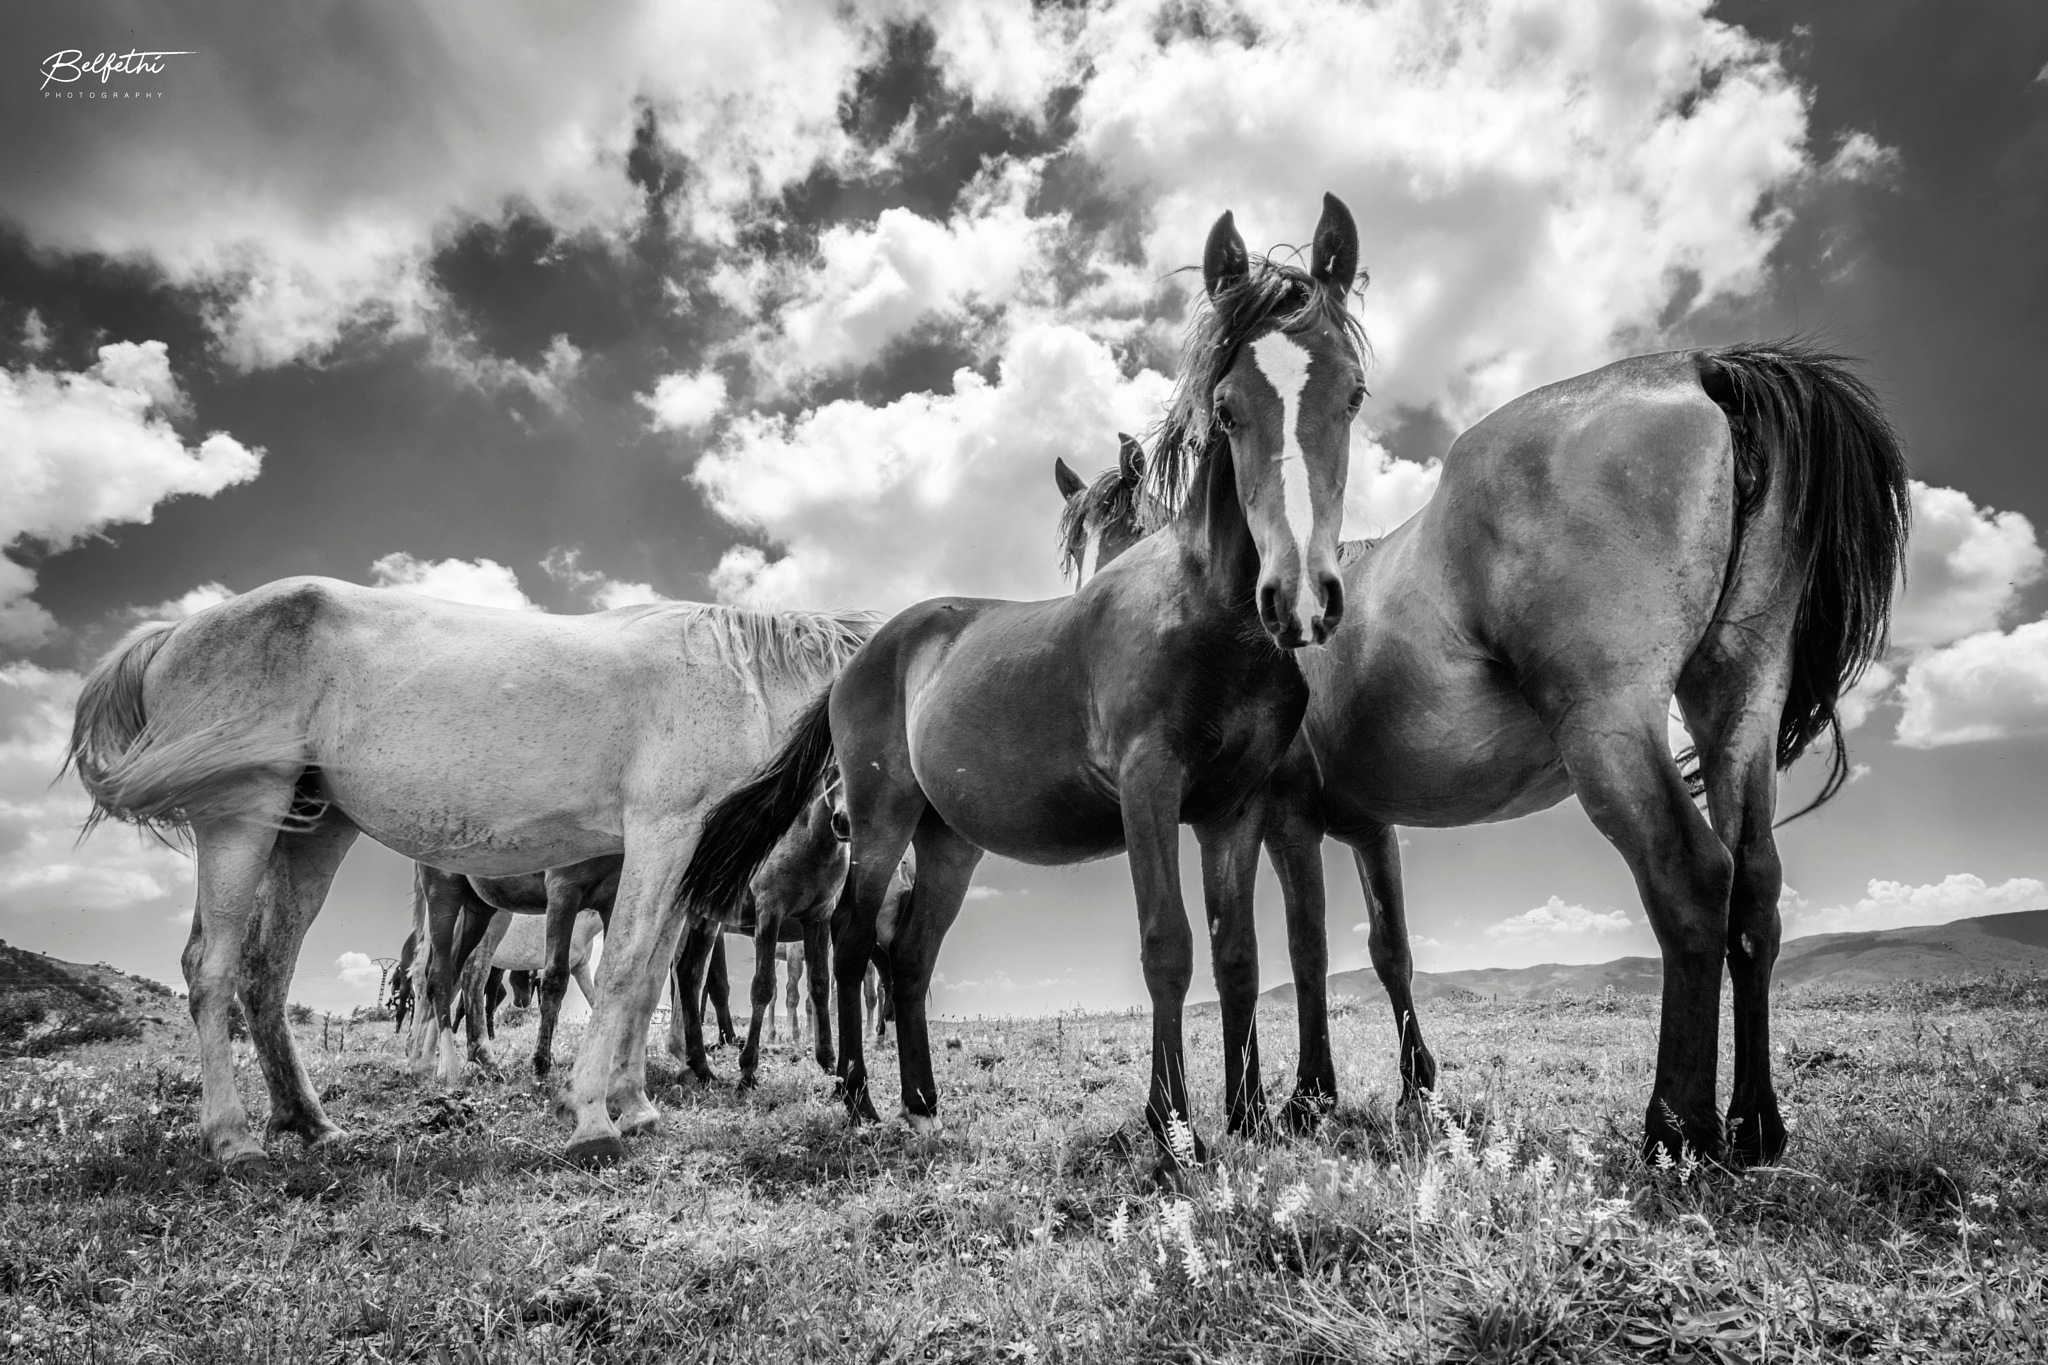 Horses by Noureddine Belfethi